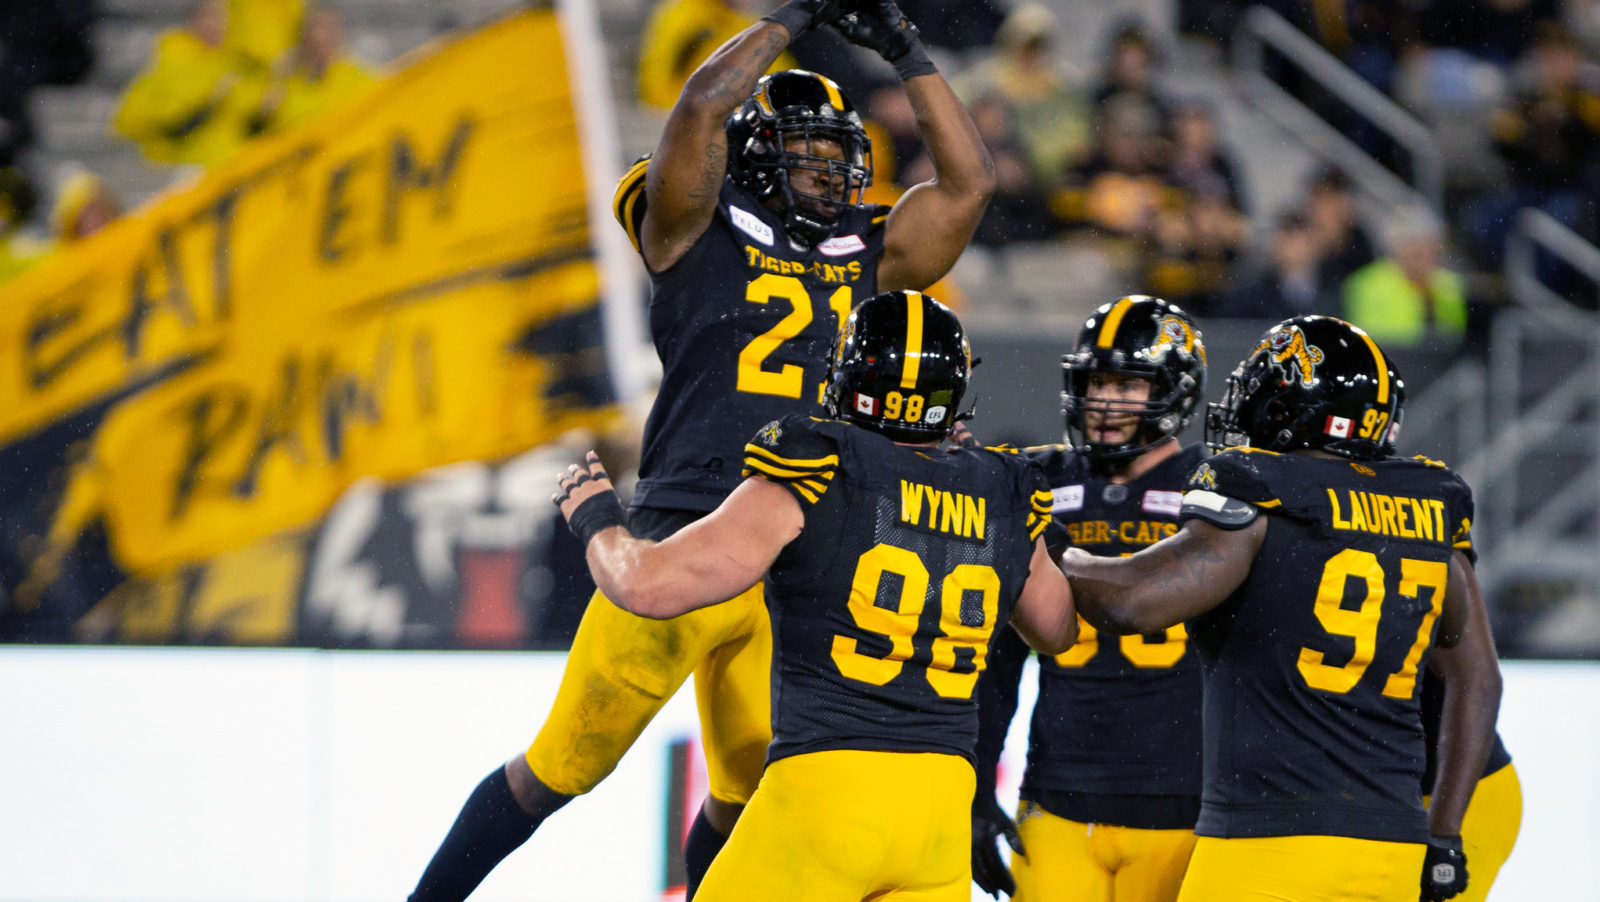 The Team for you? The Hamilton Tiger-Cats